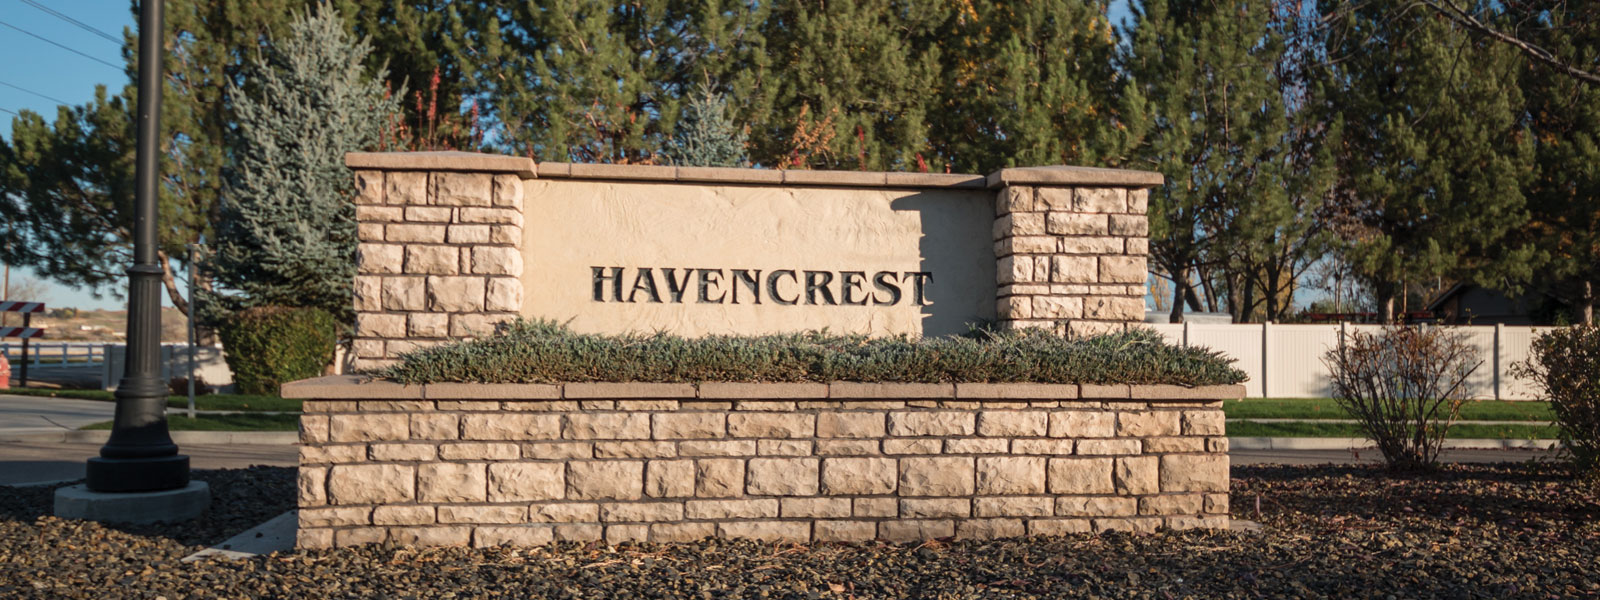 Havencrest Subdivision Star Idaho